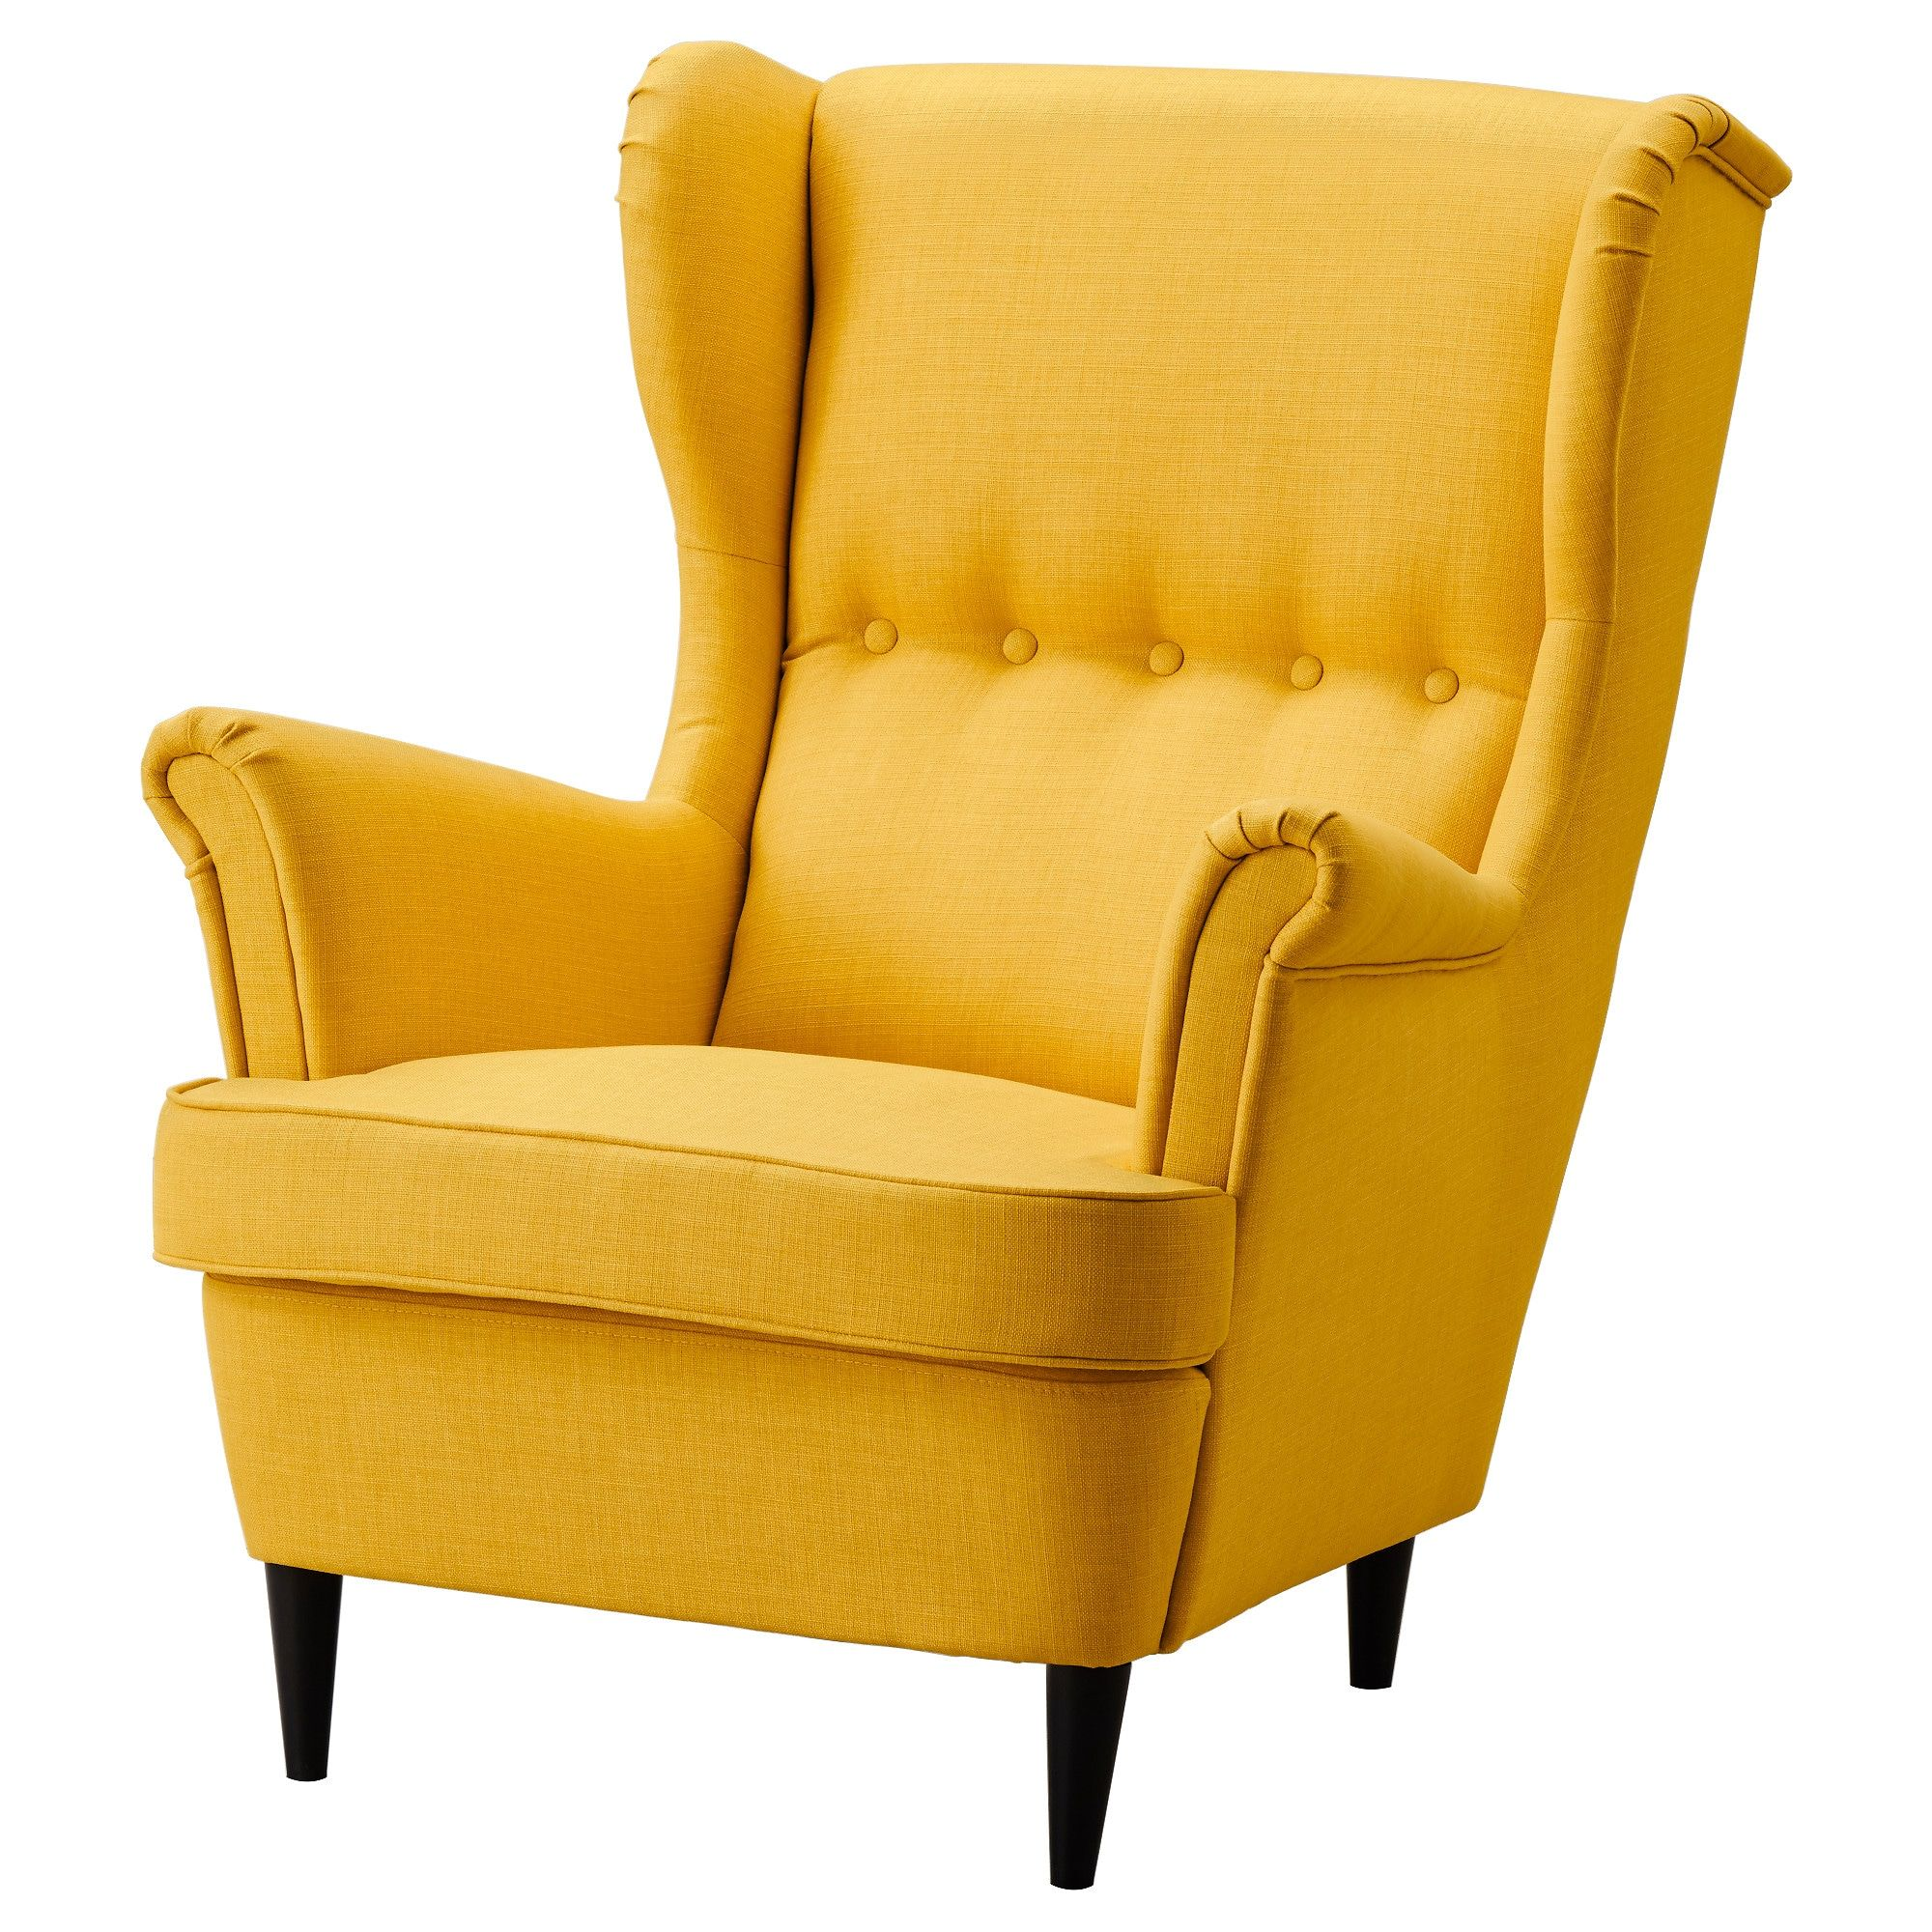 STRANDMON Wing chair Skiftebo yellow (With images